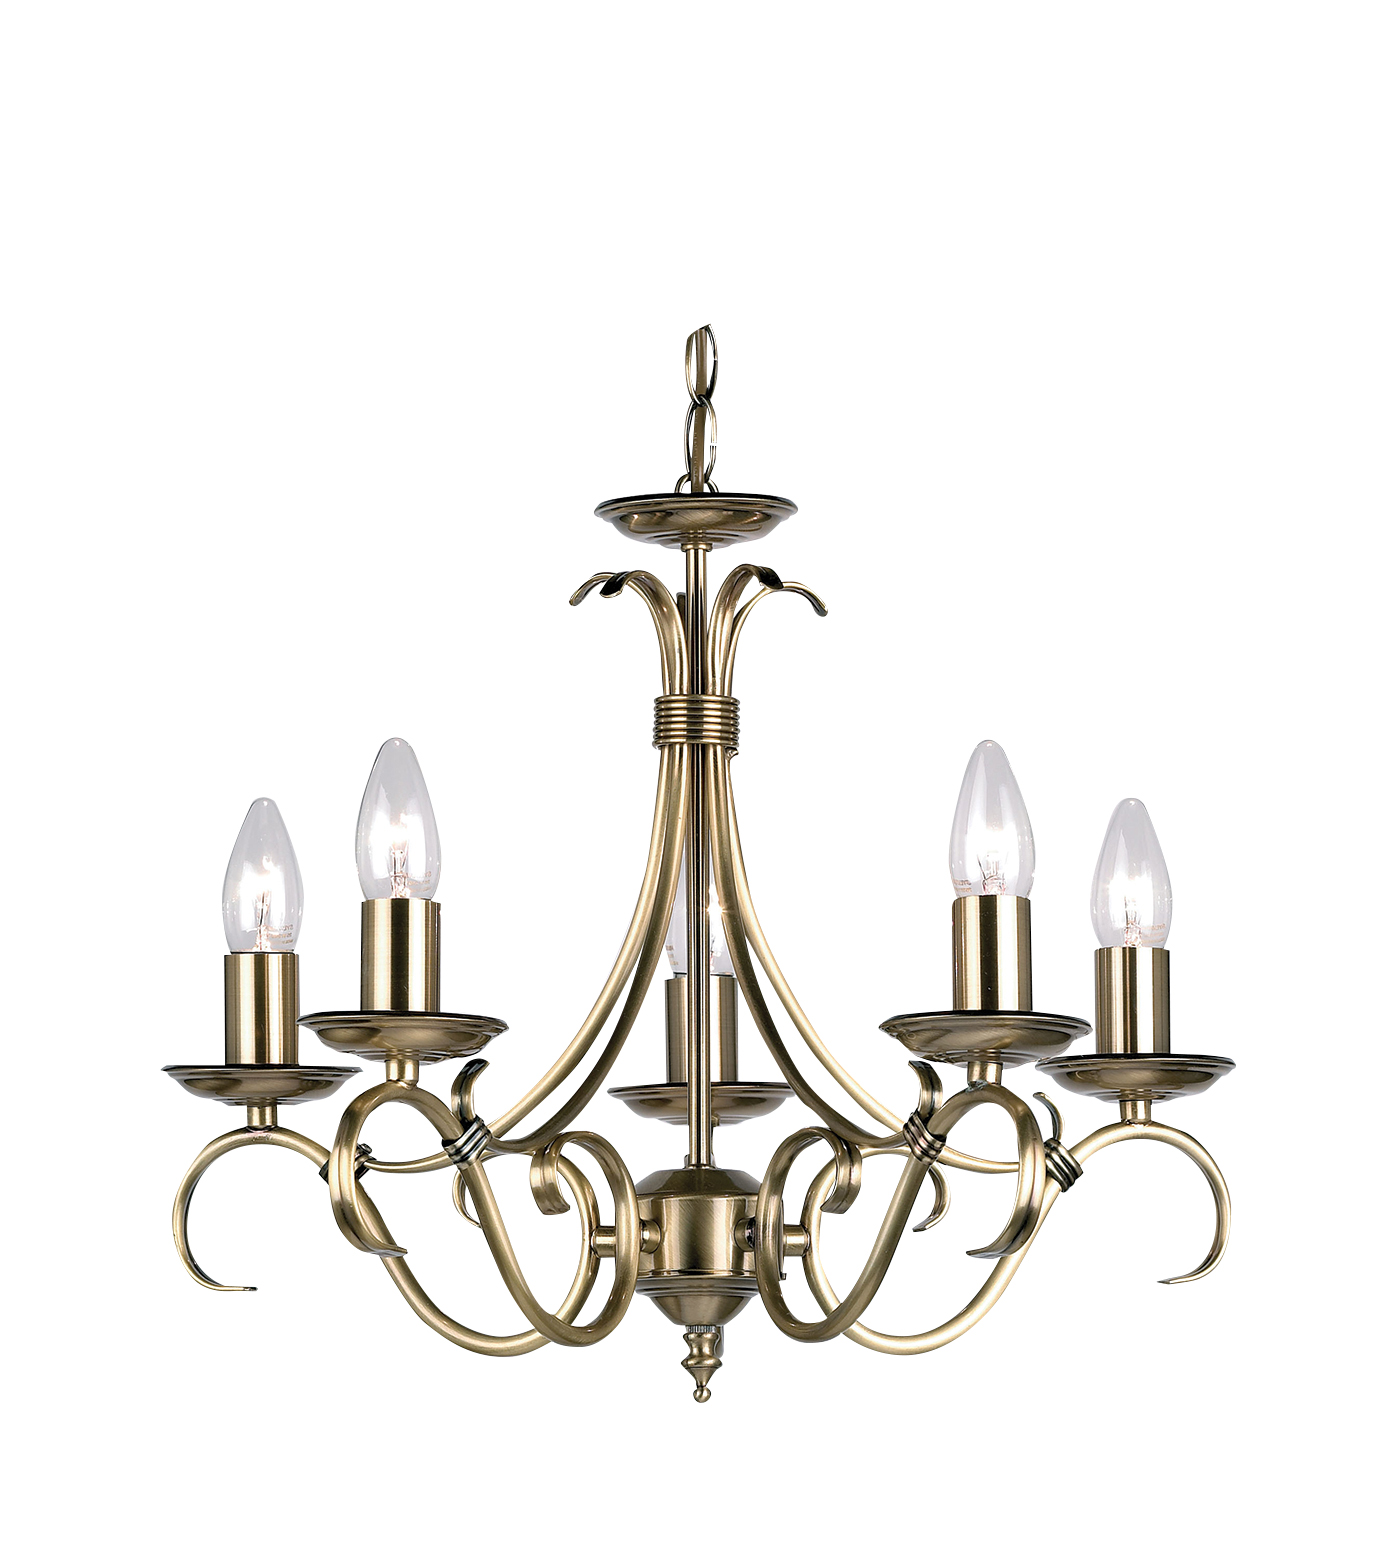 Endon Bernice chandelier 5x 60W Antique brass effect plate